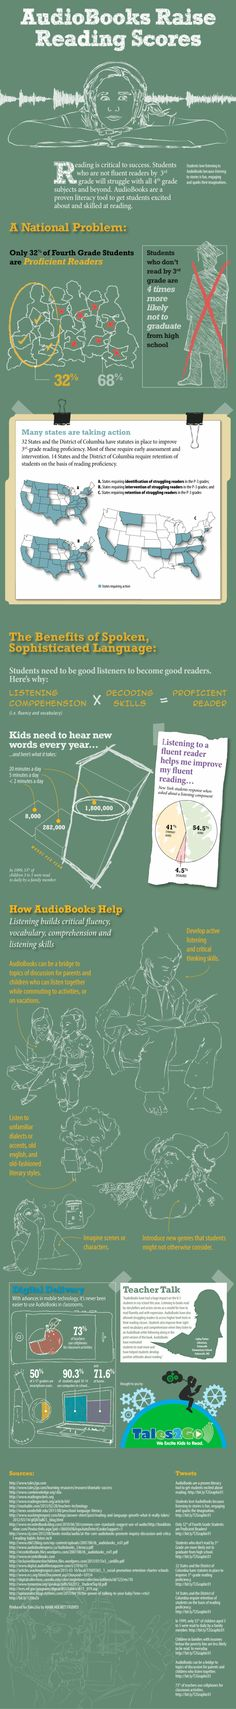 This infographic exemplifies the importance of catering for different learning styles - in this case aural learners. Not all students are proficient readers, and audio books are a great tool for improving literacy.